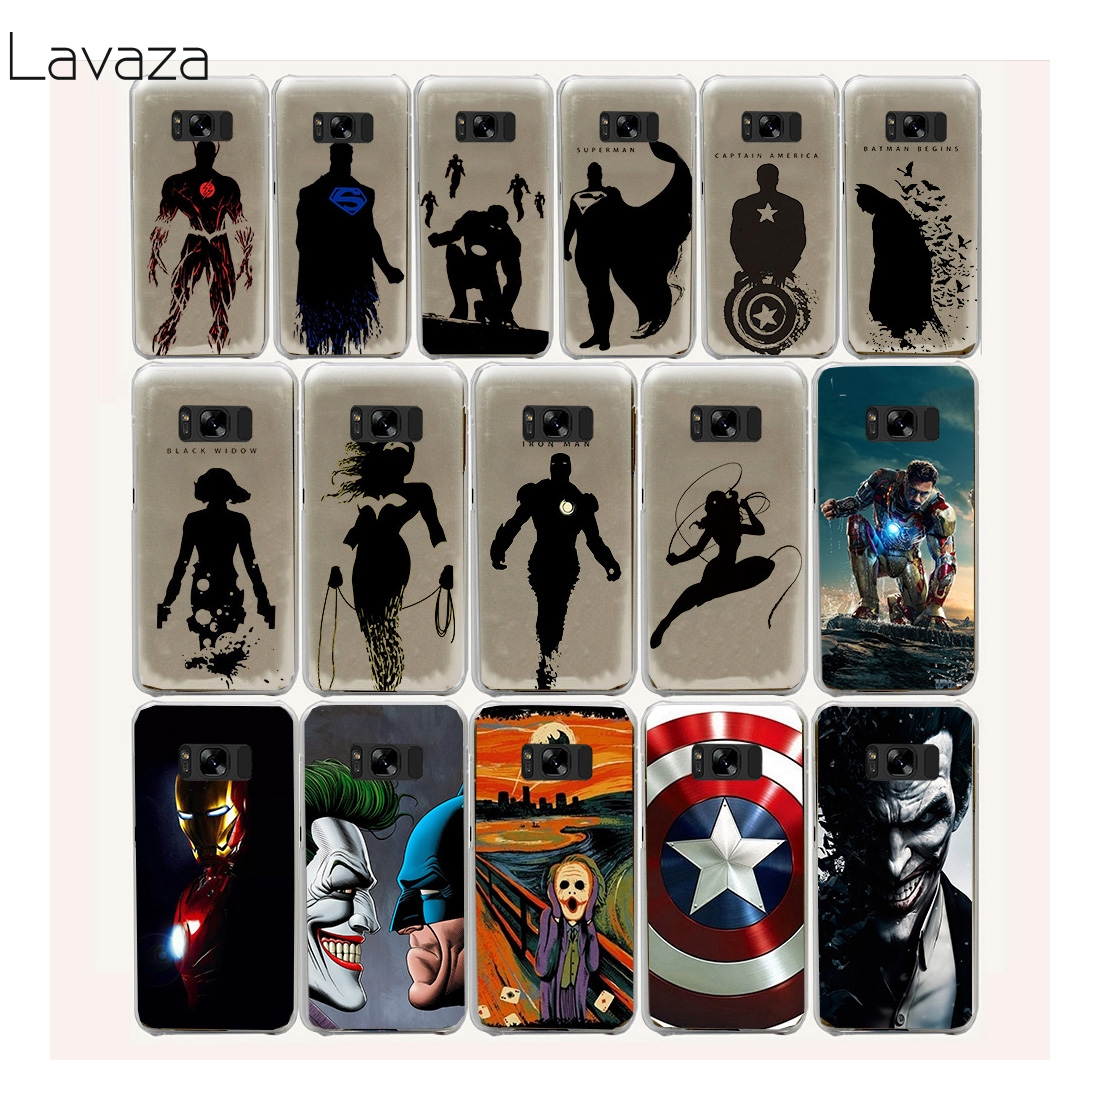 Lavaza 29FF <font><b>Super</b></font> <font><b>Hero</b></font> Batman <font><b>Spider</b></font> <font><b>Man</b></font> Hard Case for <font><b>Samsung</b></font> <font><b>Galaxy</b></font> S8 Plus S7 S6 Edge S5 S4 S3 S2 <font><b>Mini</b></font> Plus